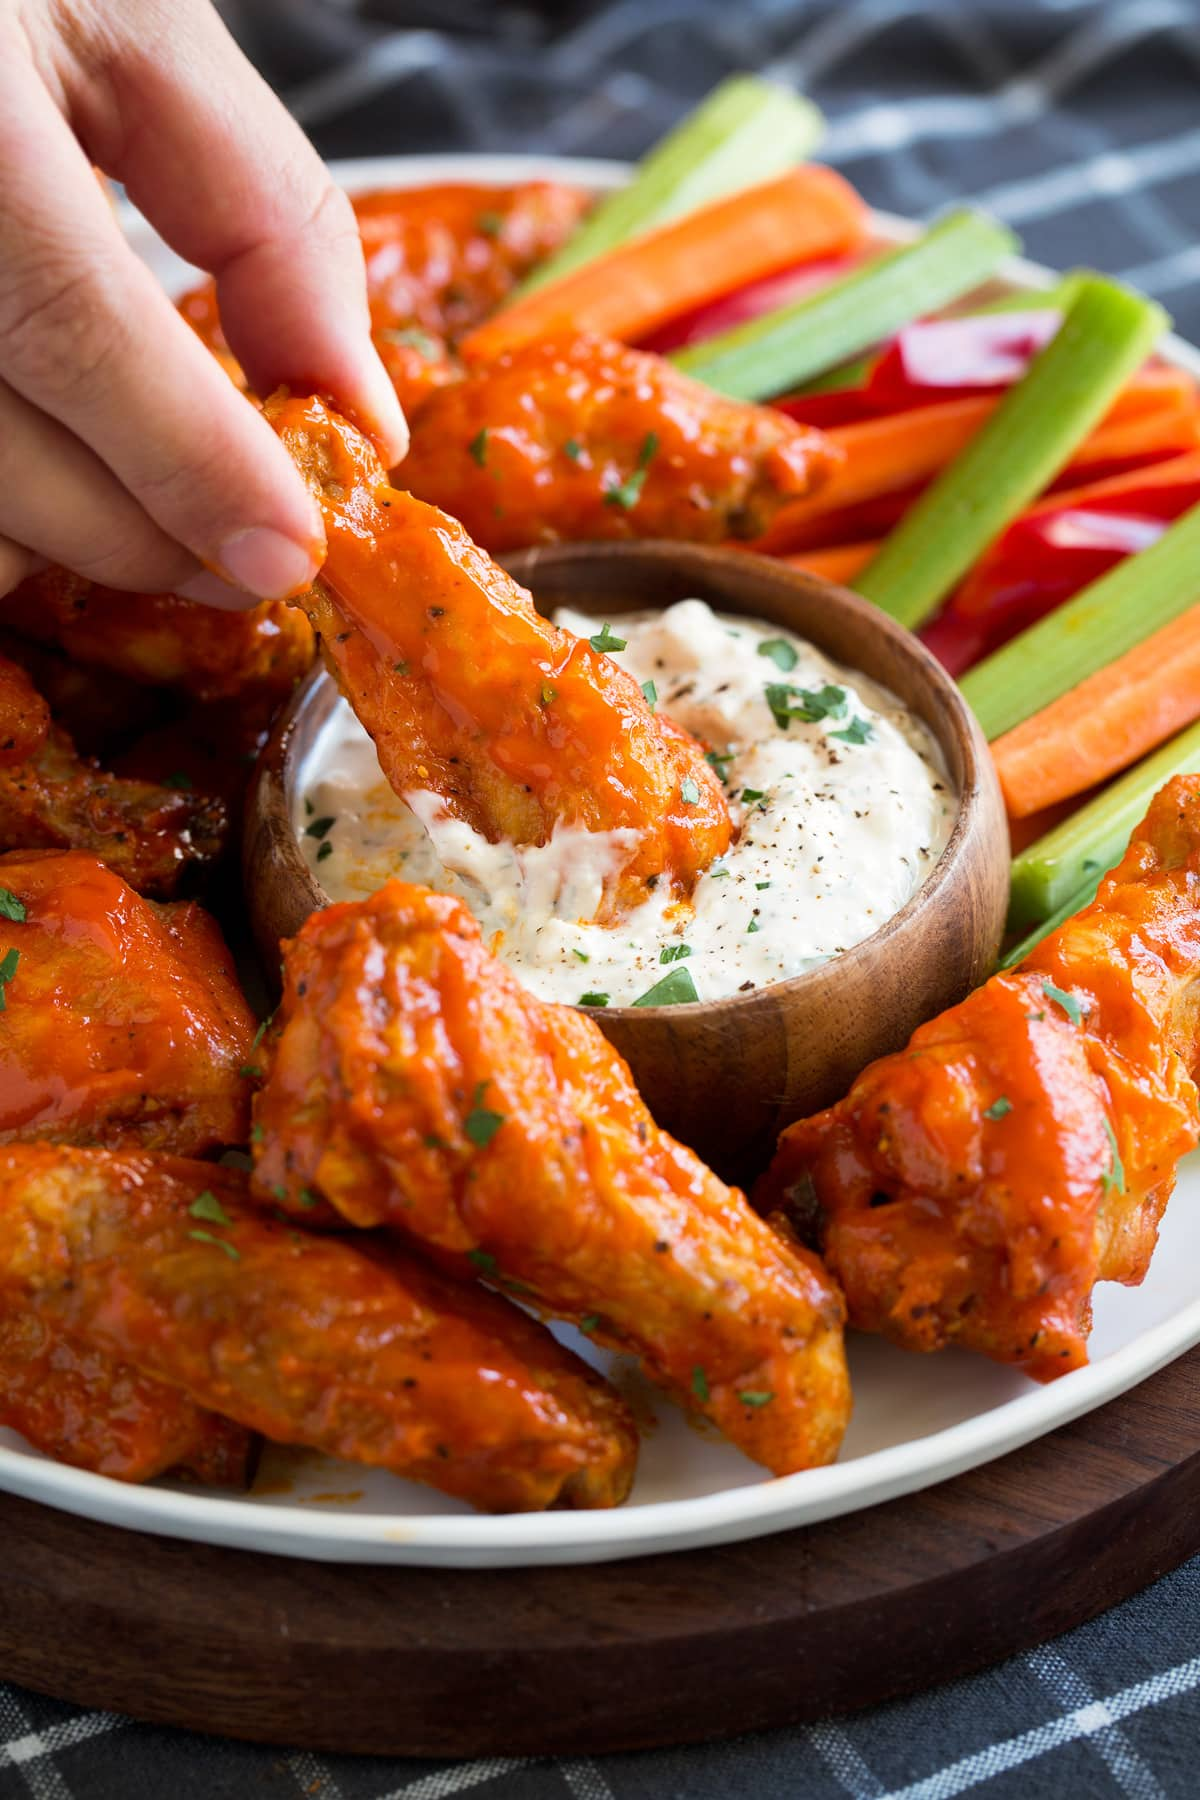 Buffalo wings dipped in blue cheese dip.